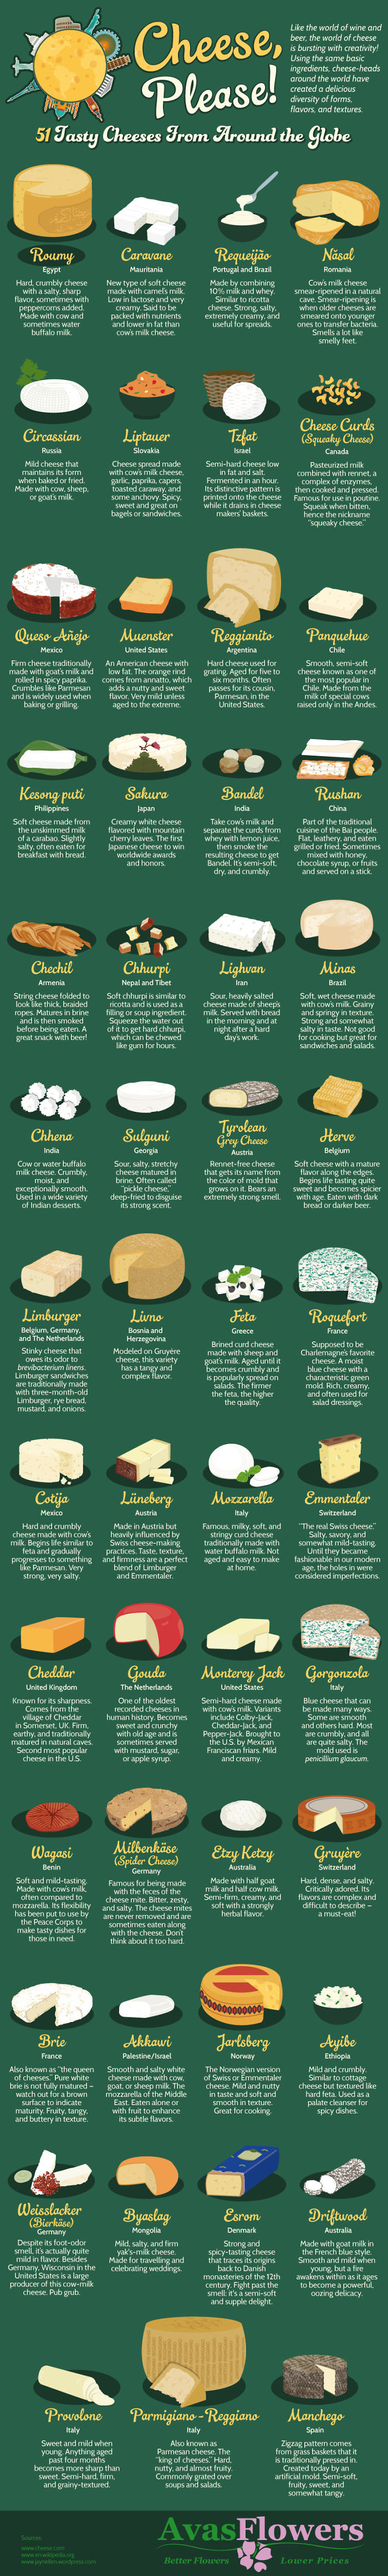 Get To Know Some International Cheeses!